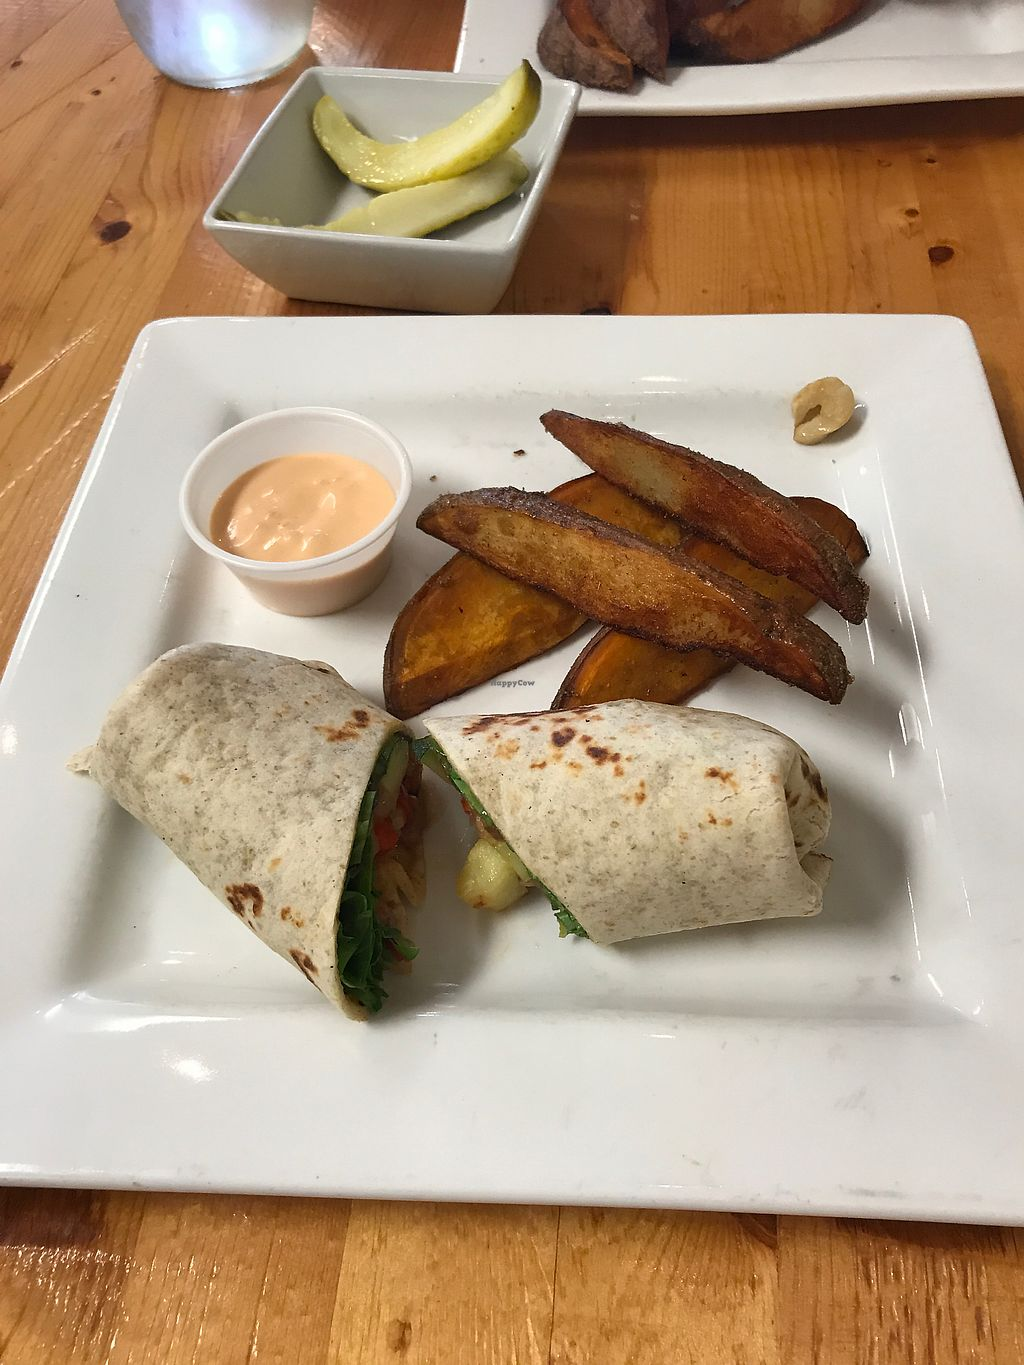 "Photo of Vida 365  by <a href=""/members/profile/HelenKelley"">HelenKelley</a> <br/>Veggie wrap <br/> November 2, 2017  - <a href='/contact/abuse/image/97587/321238'>Report</a>"